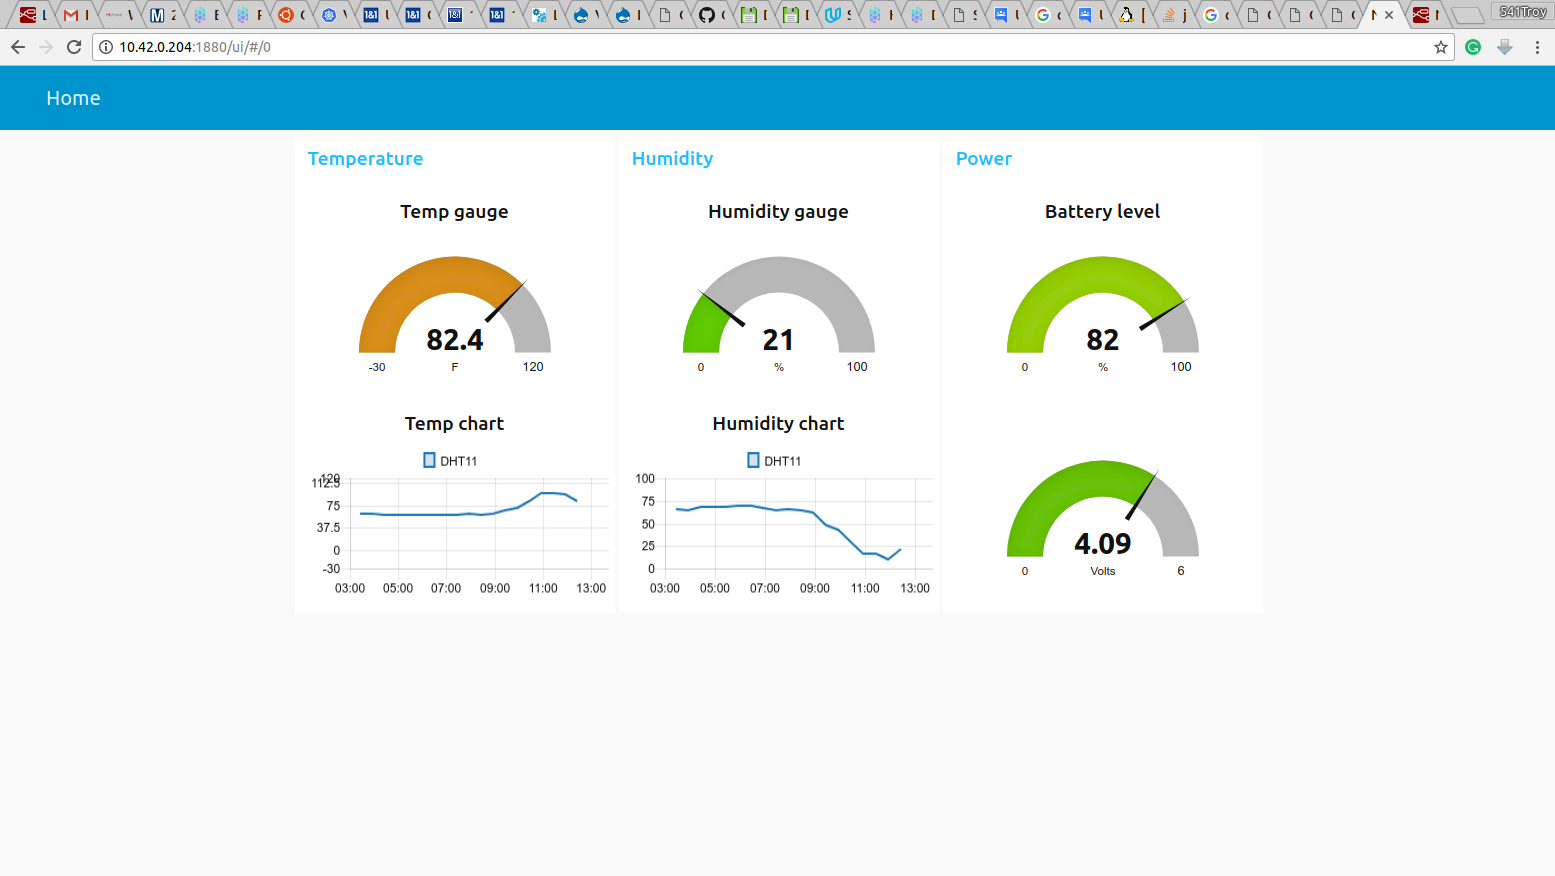 Building an IoT Monitoring System From a Raspberry Pi (part 1